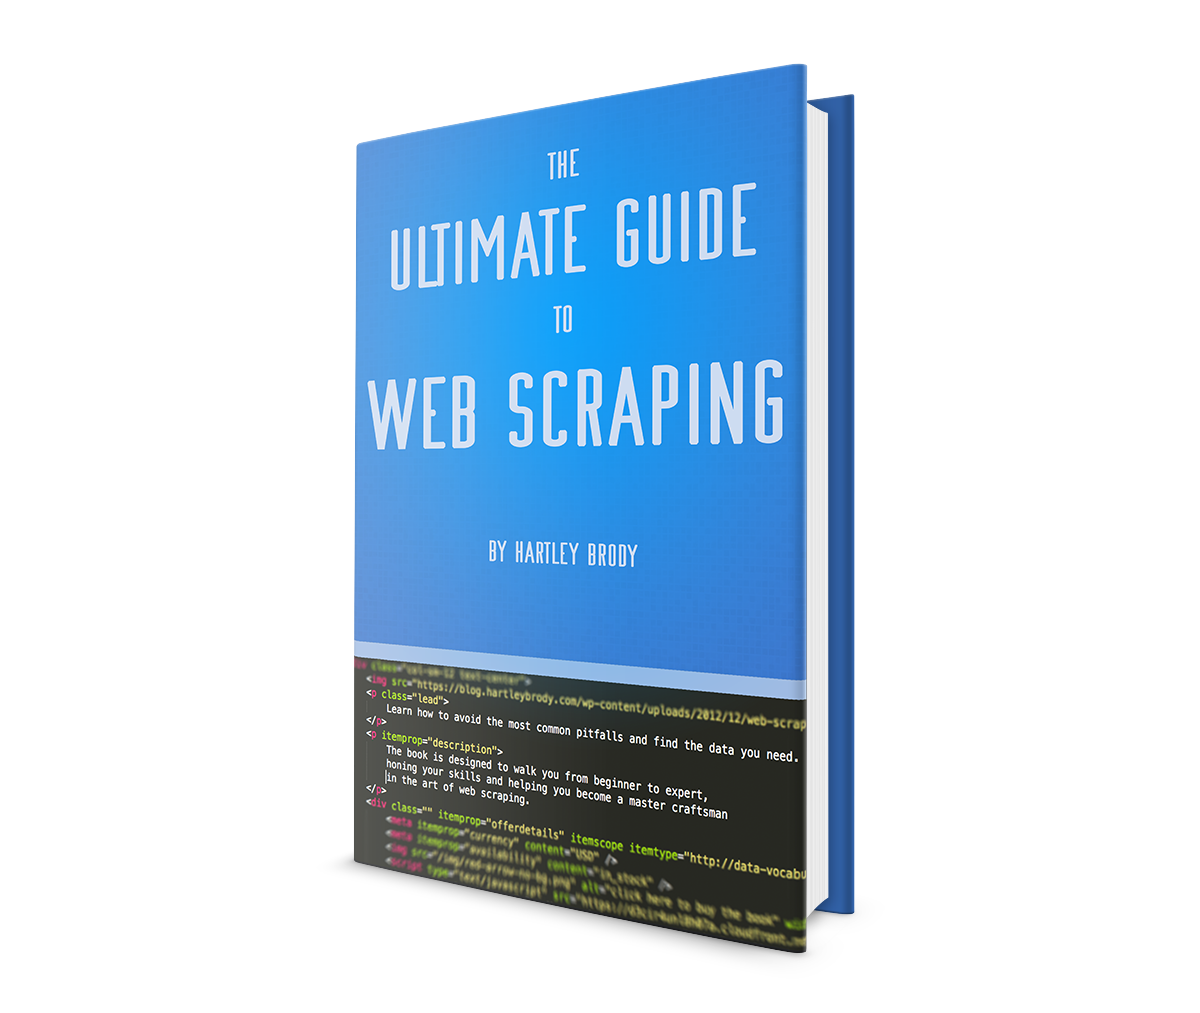 web-scraping-ebook-cover